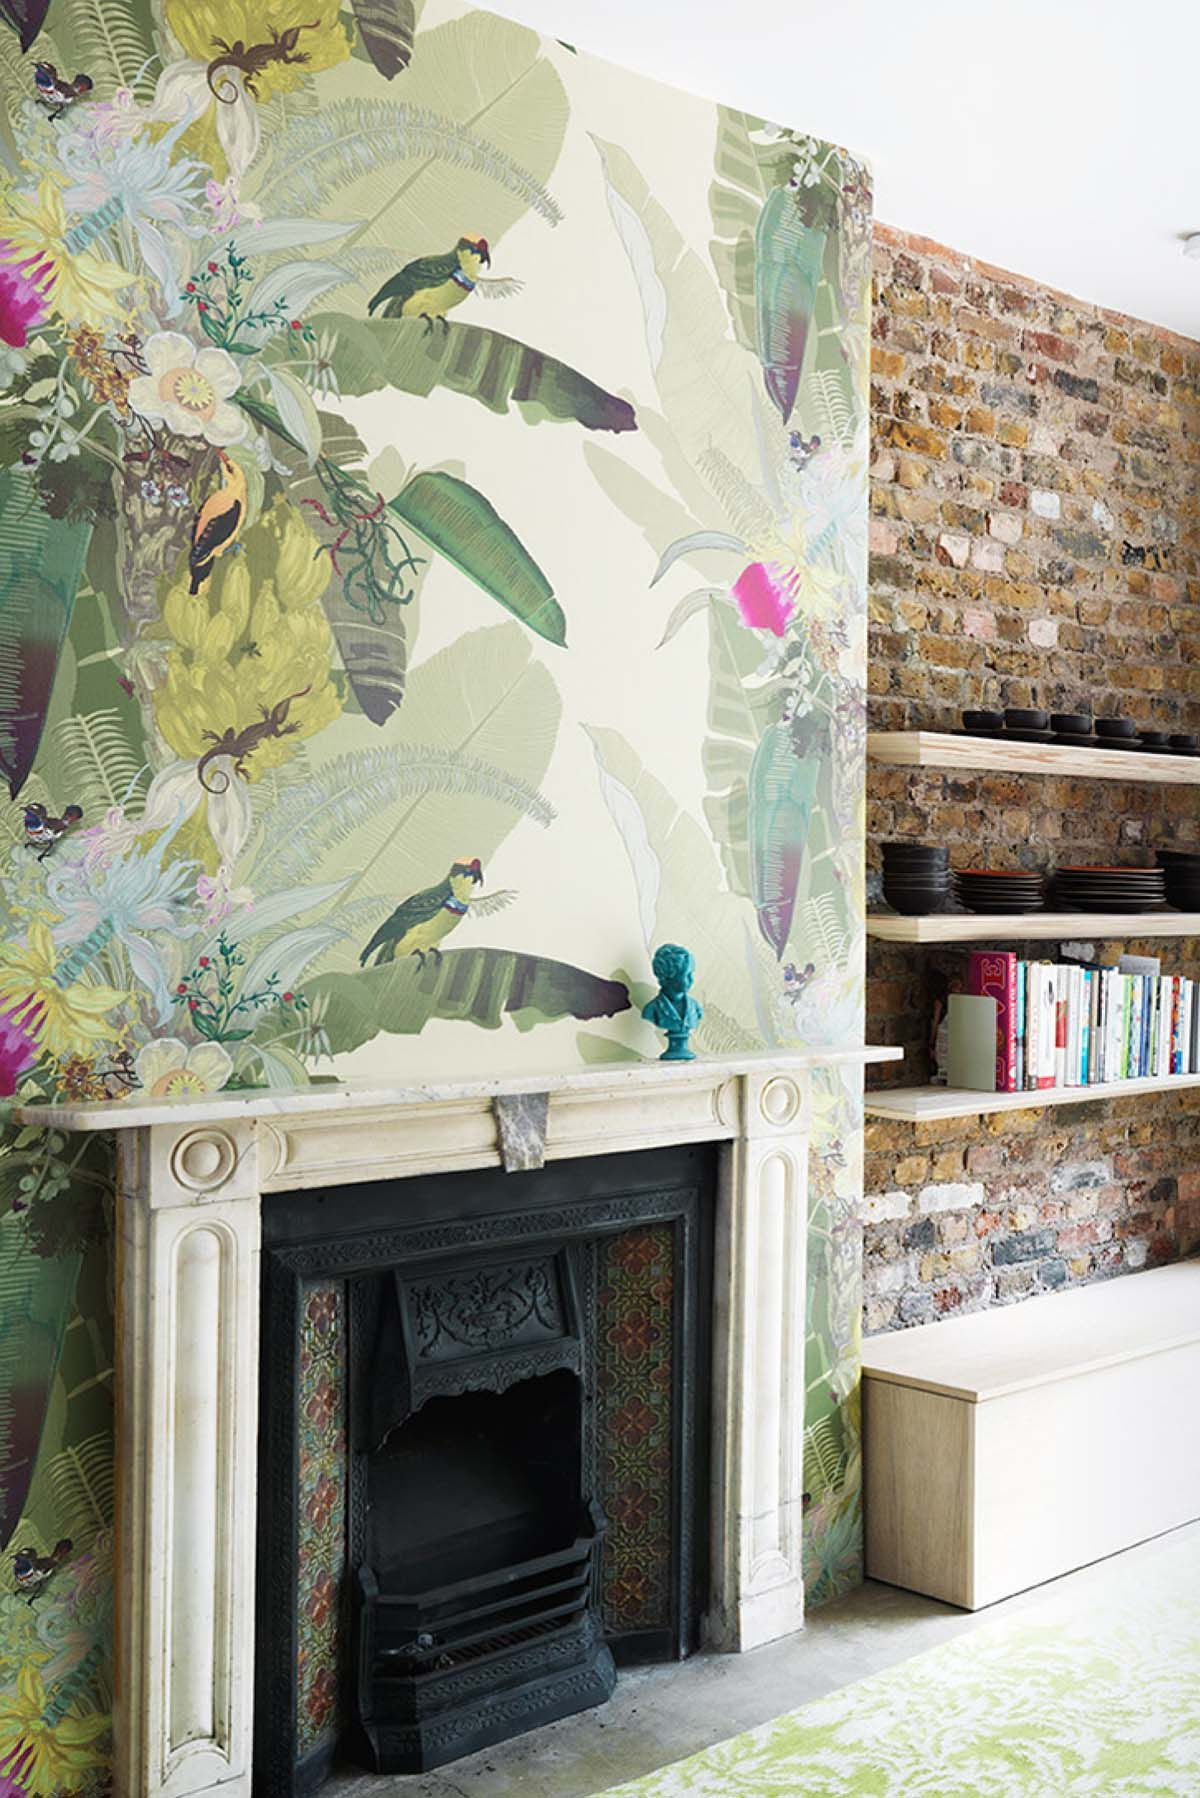 Timorous beasties on pinterest nina campbell designer wallpaper and cole and son - Wallpaper volwassen kamer trendy ...